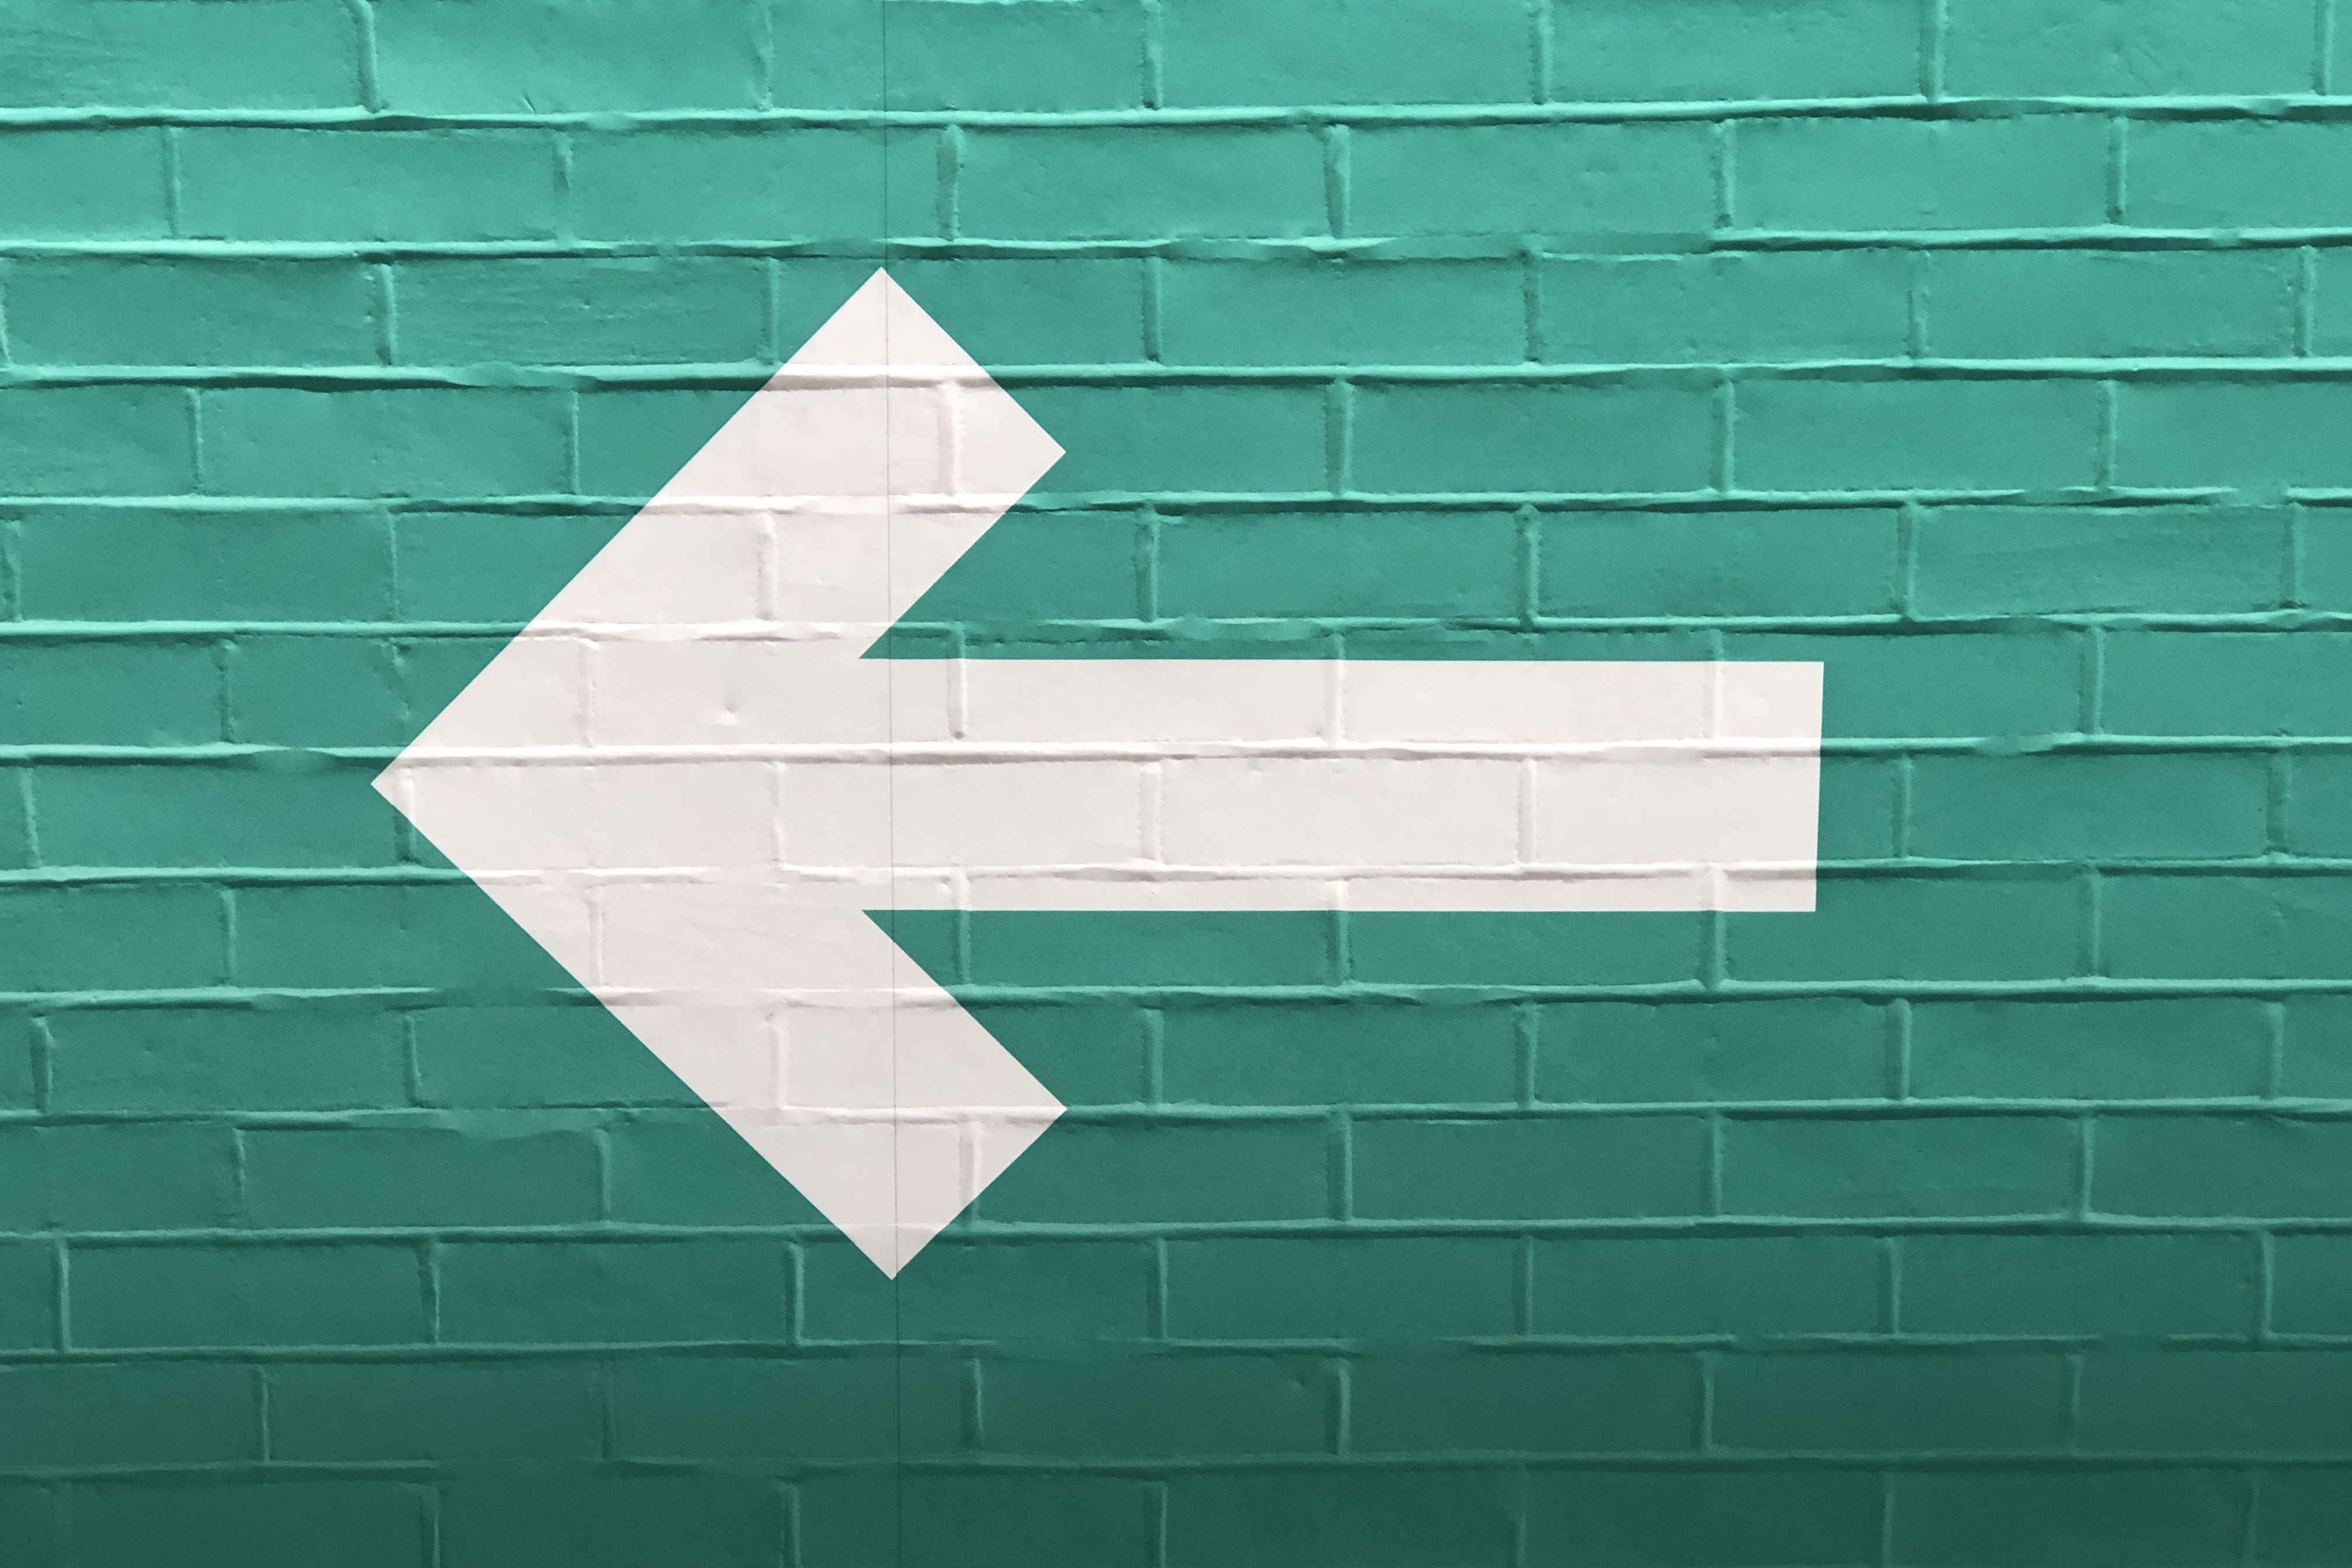 """Further to me posting a white arrow on a blue wall, pointing right, here is the other, a white arrow on a green wall, pointing left."""